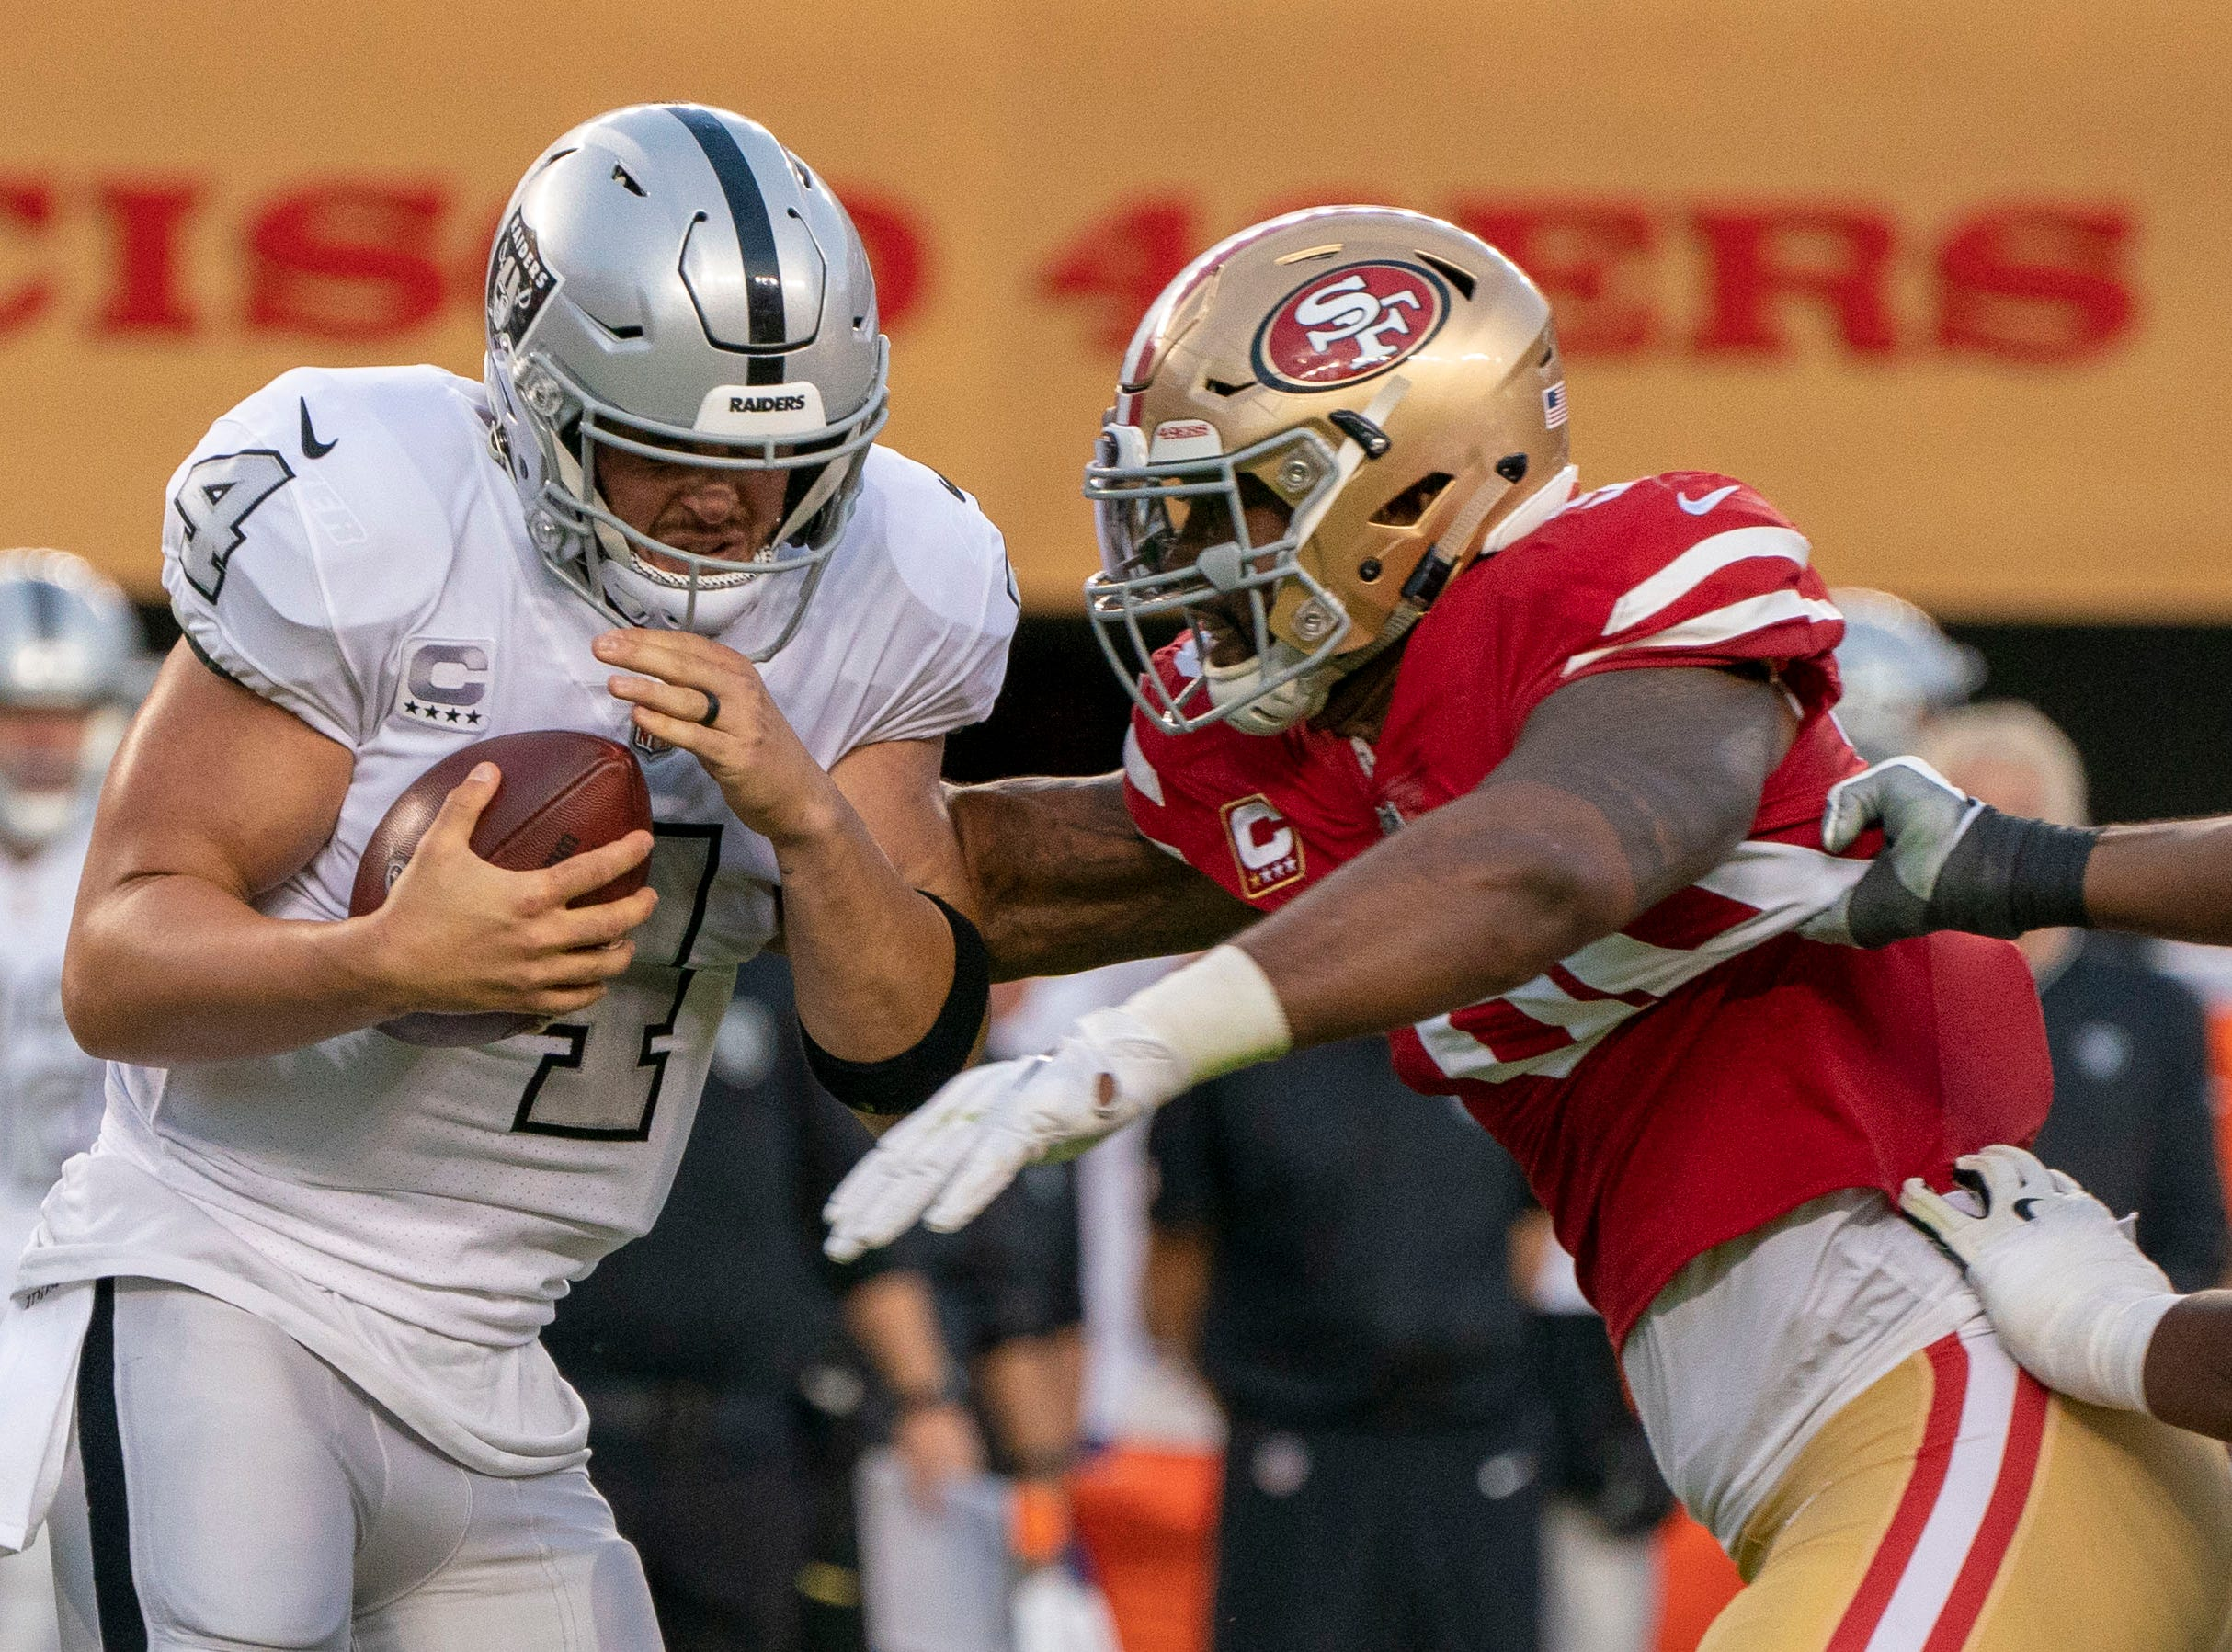 Oakland Raiders quarterback Derek Carr (4) is sacked by San Francisco 49ers defensive tackle DeForest Buckner (99) during the first quarter at Levi's Stadium.